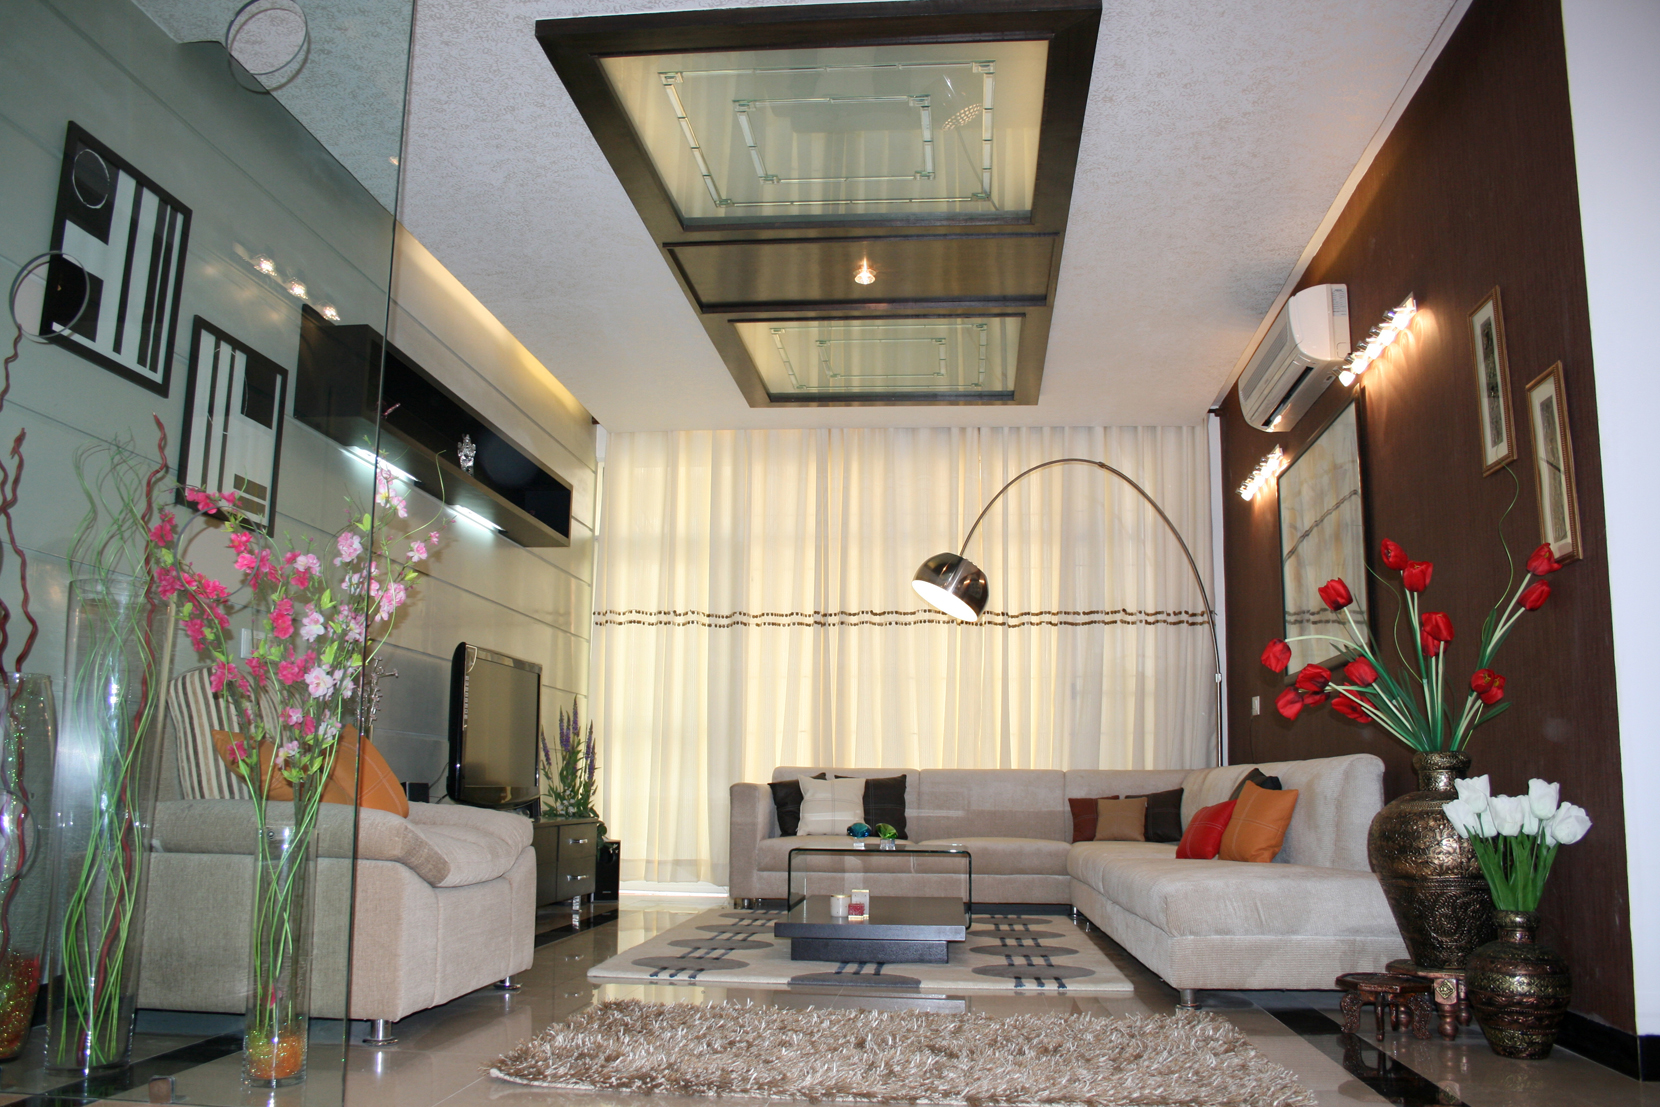 Architecture Design For Home In Delhi residential & commercial interior design & decor projects